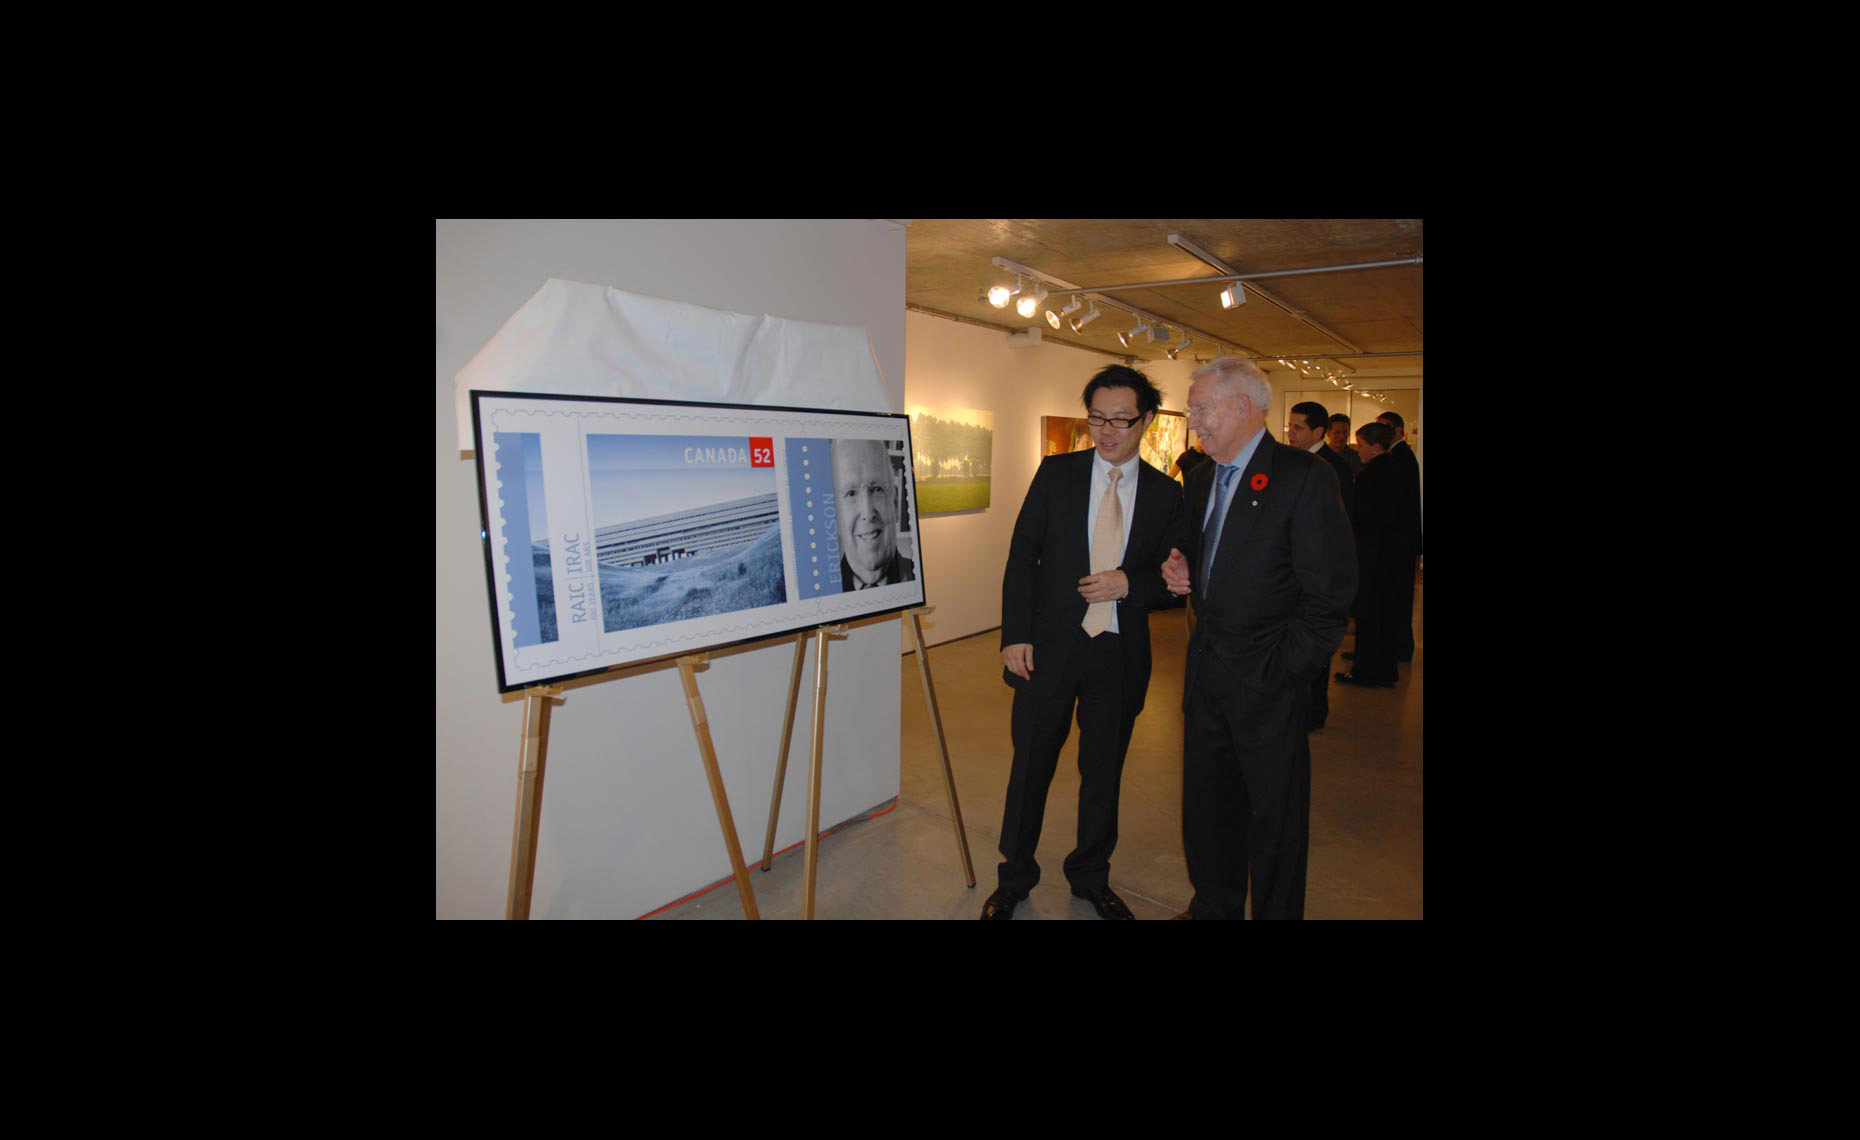 Arthur Erickson with Terry Hui